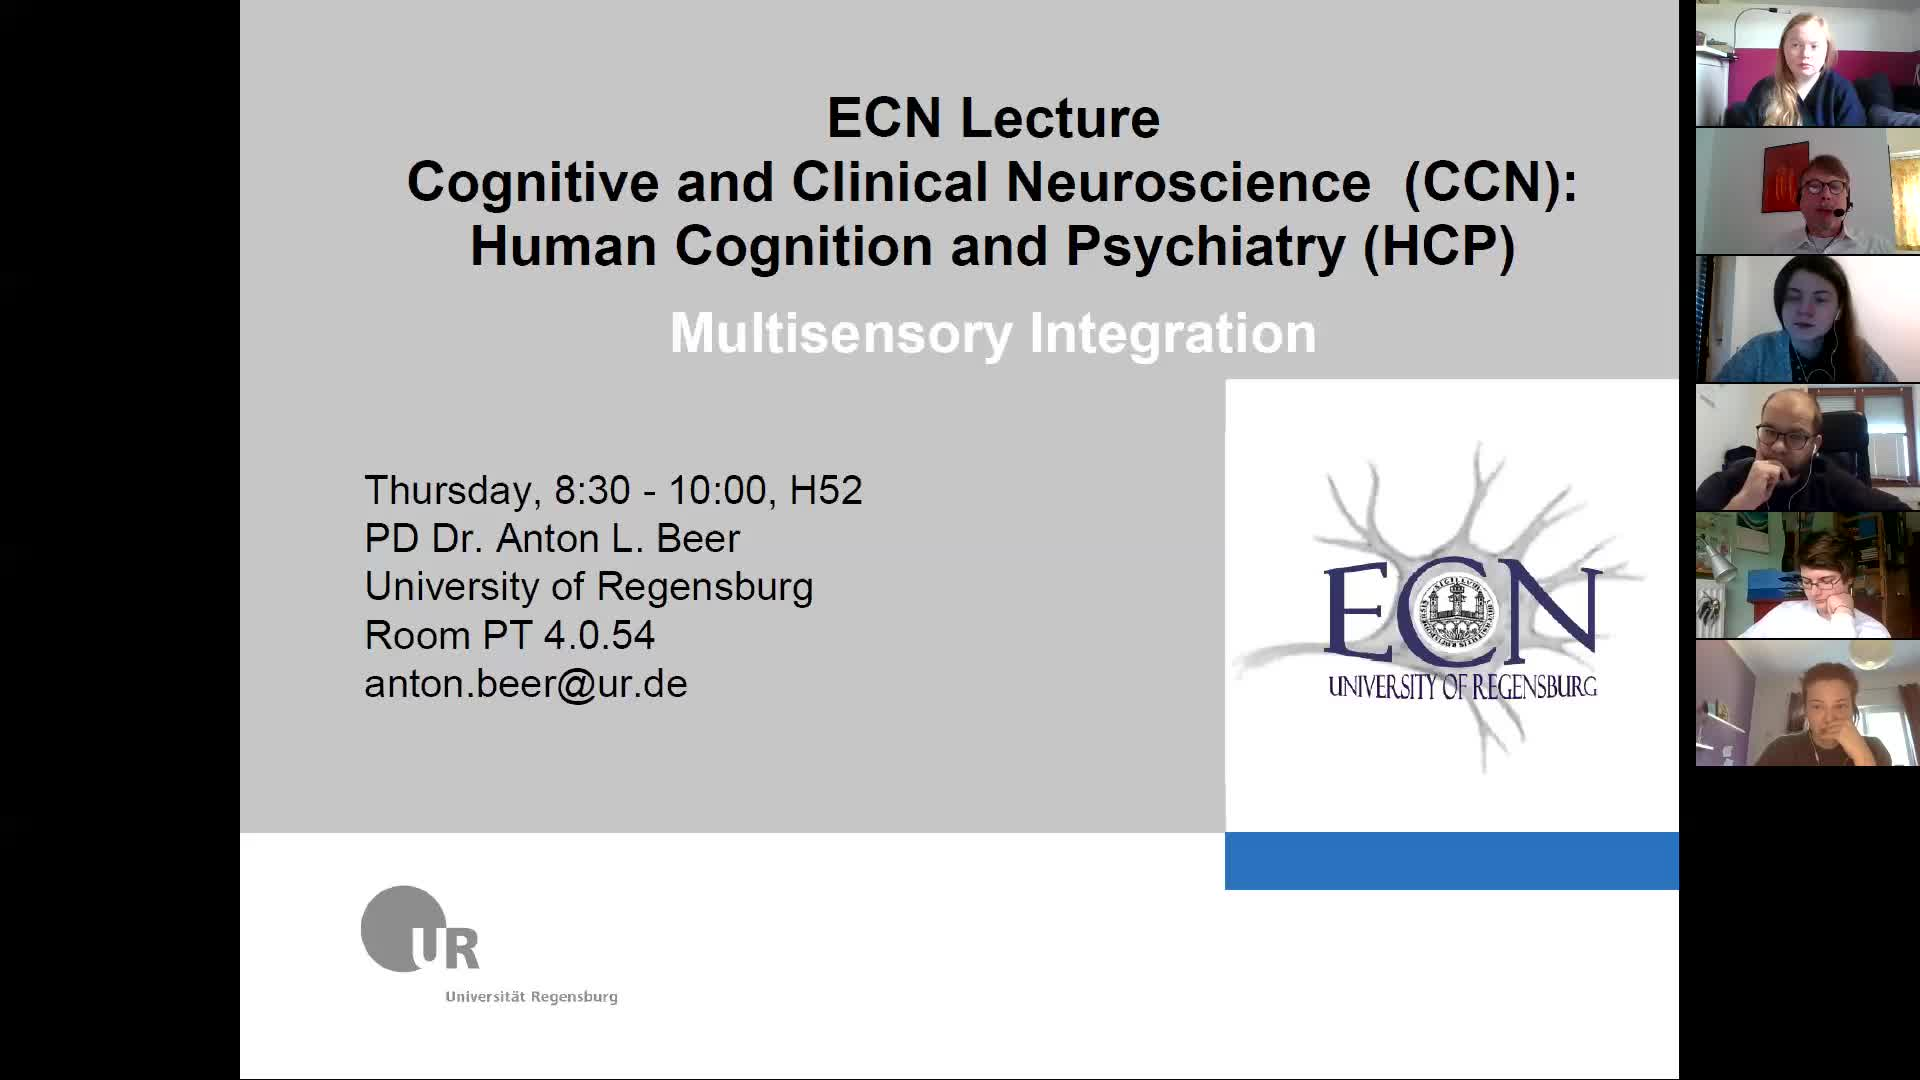 ECN-CCN-Lecture 4: Multisensory Integration